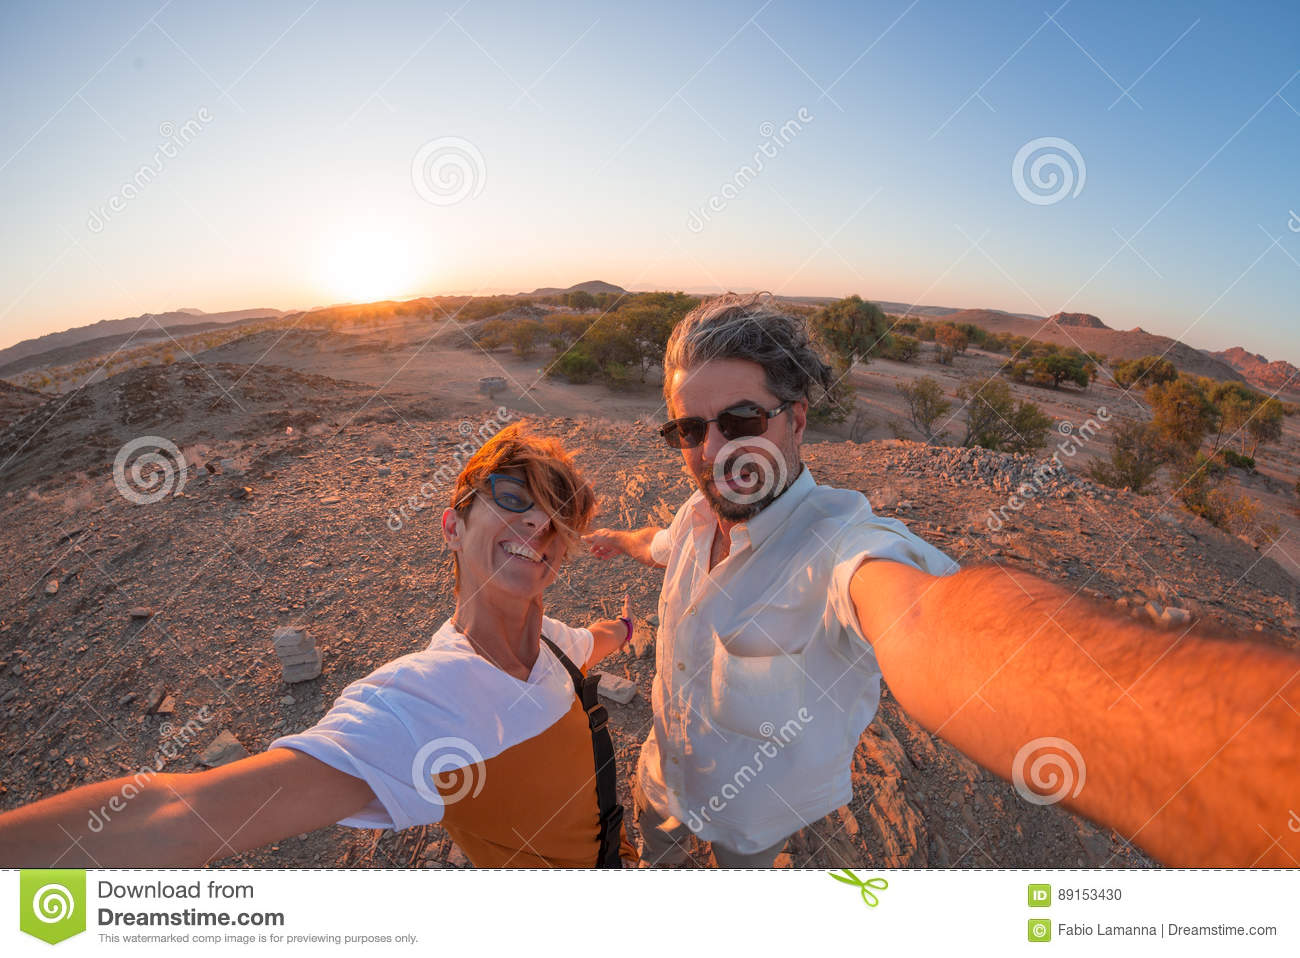 Smiling adult couple taking selfie in the Namib desert, Namib Naukluft National Park, main travel destination in Namibia, Africa.